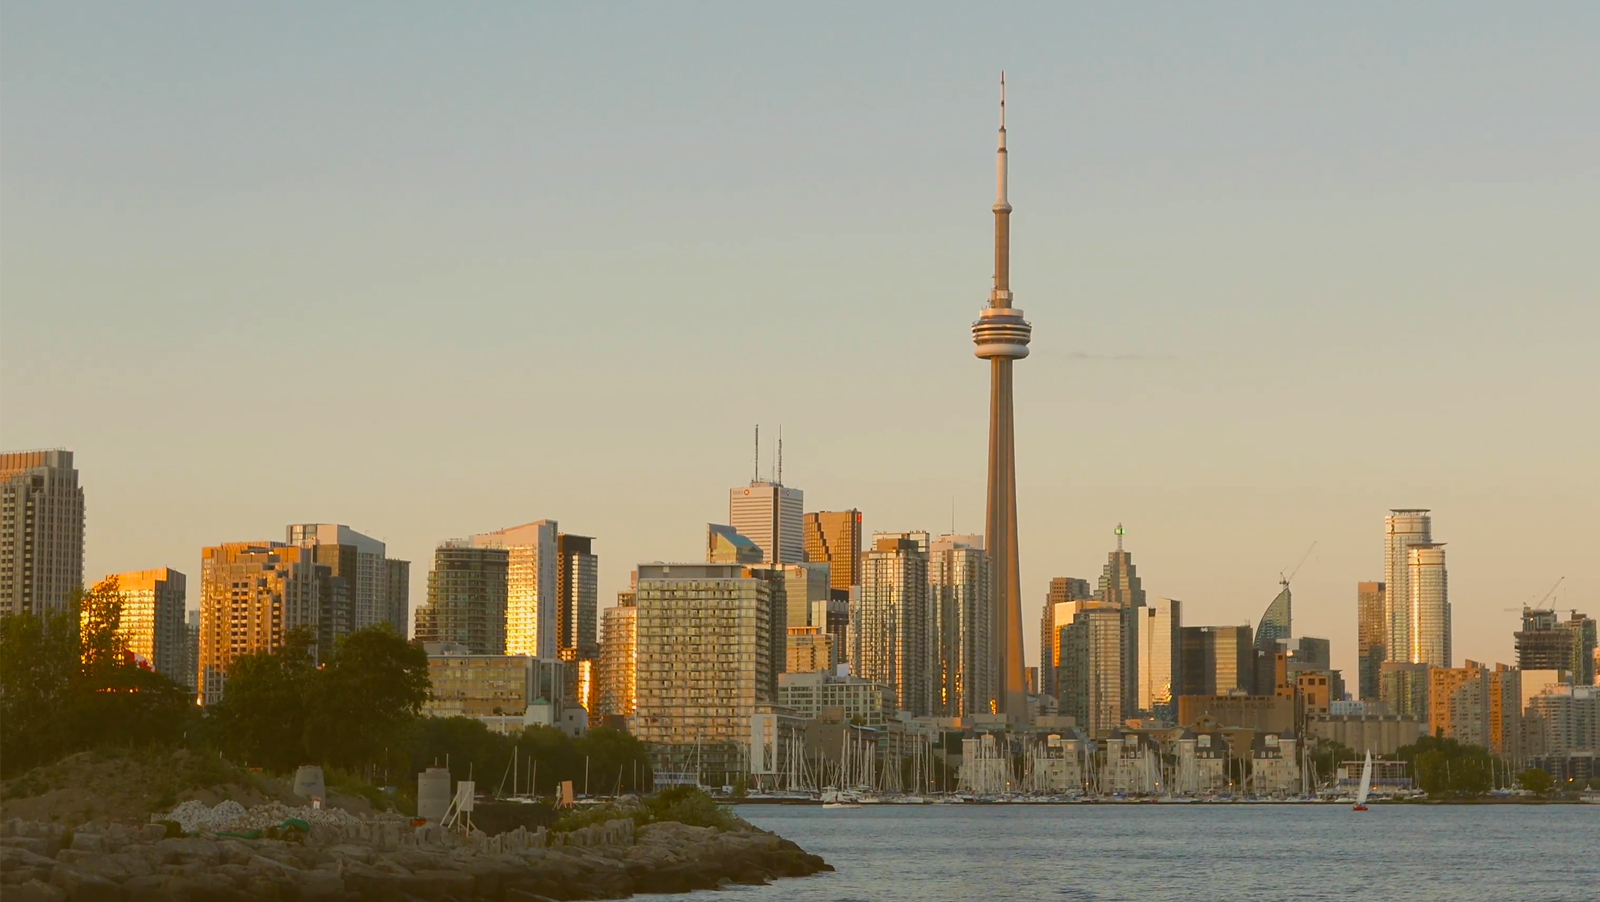 Becky's Affiliated: Top 5 reasons why iGaming professionals should attend CoinGeek Toronoto